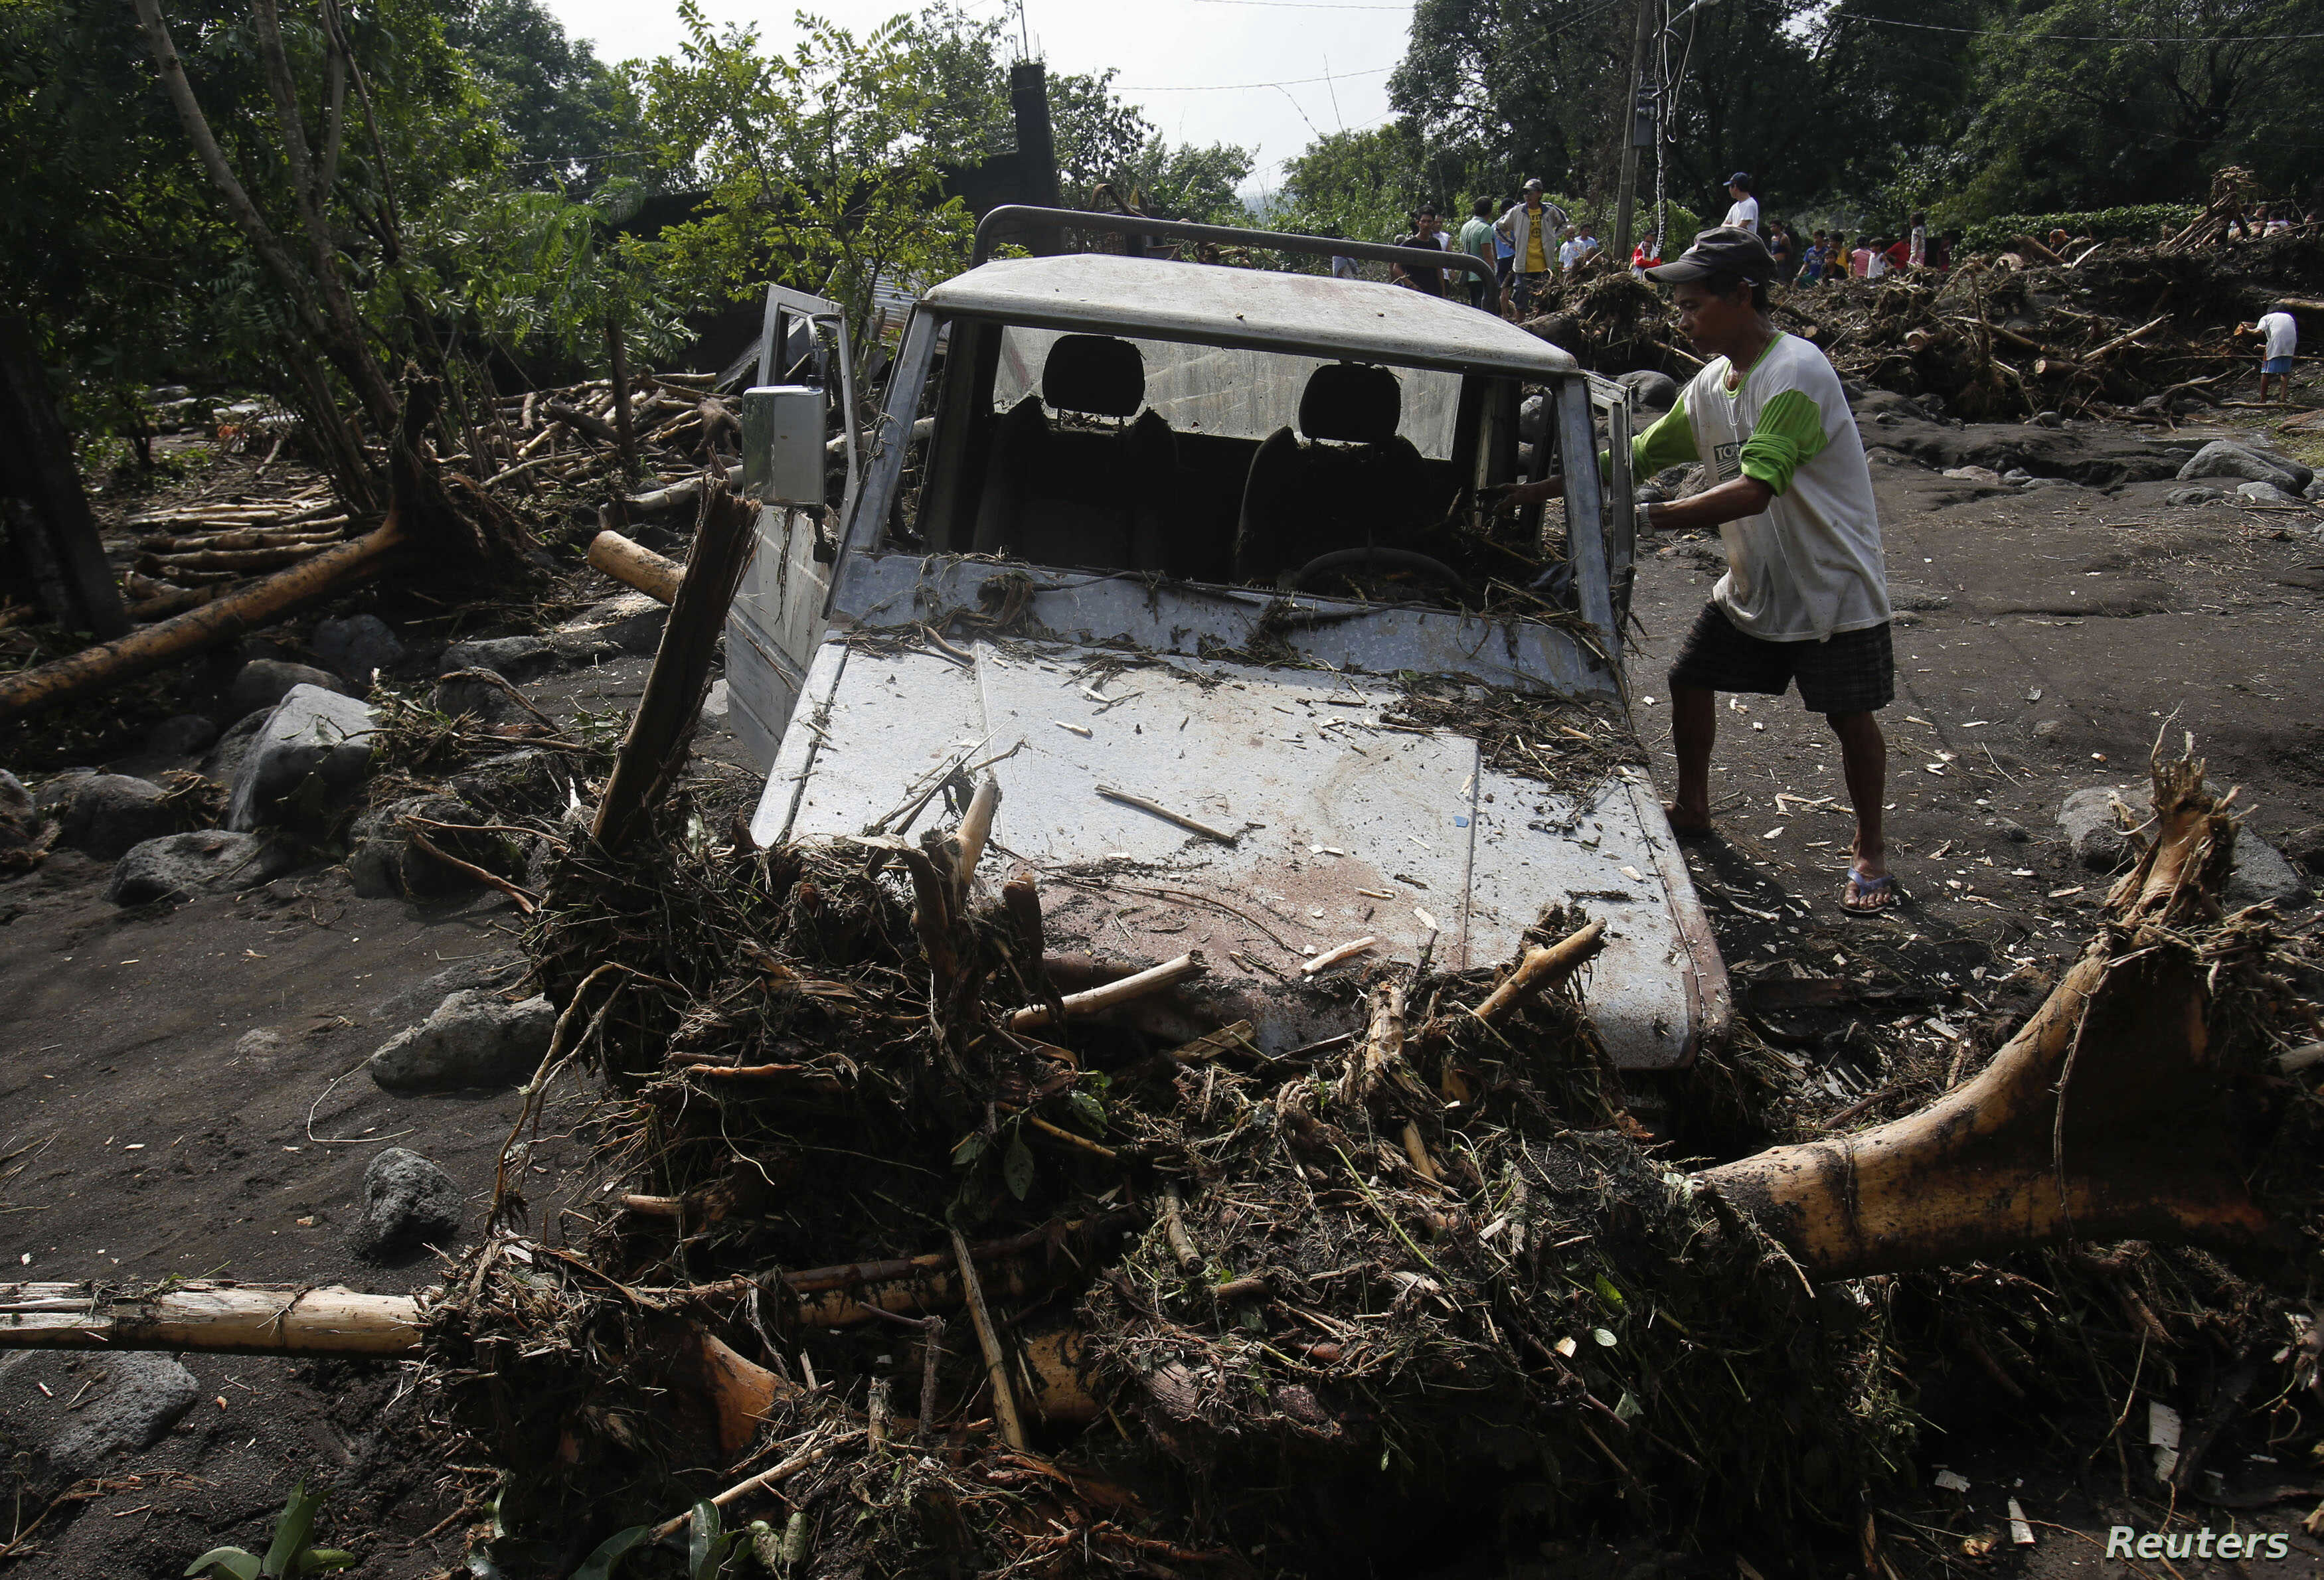 A man removes debris from his vehicle along a road in Arayat, Pampanga, that was hit by Typhoon Nari in the northern Philippines, October 13, 2013.